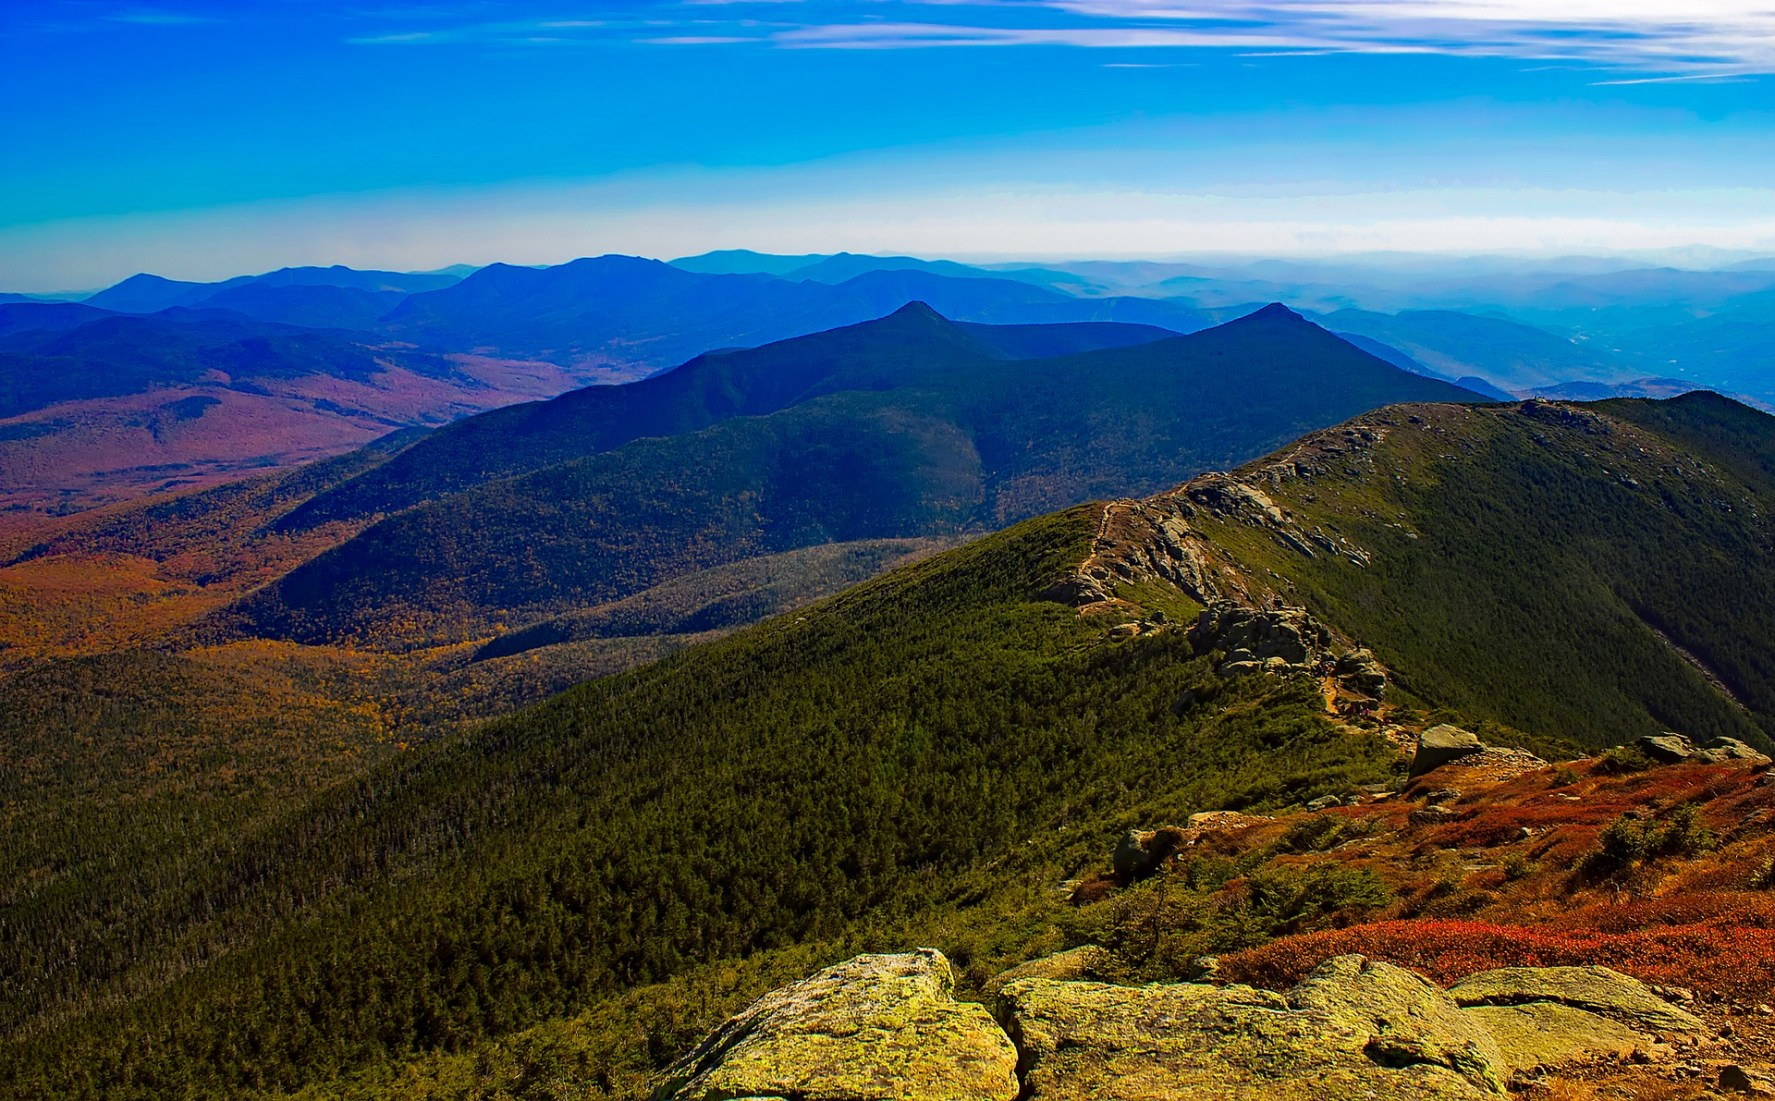 A New Hampshire Summer Road Trip | Lifestyle, Food, Travel